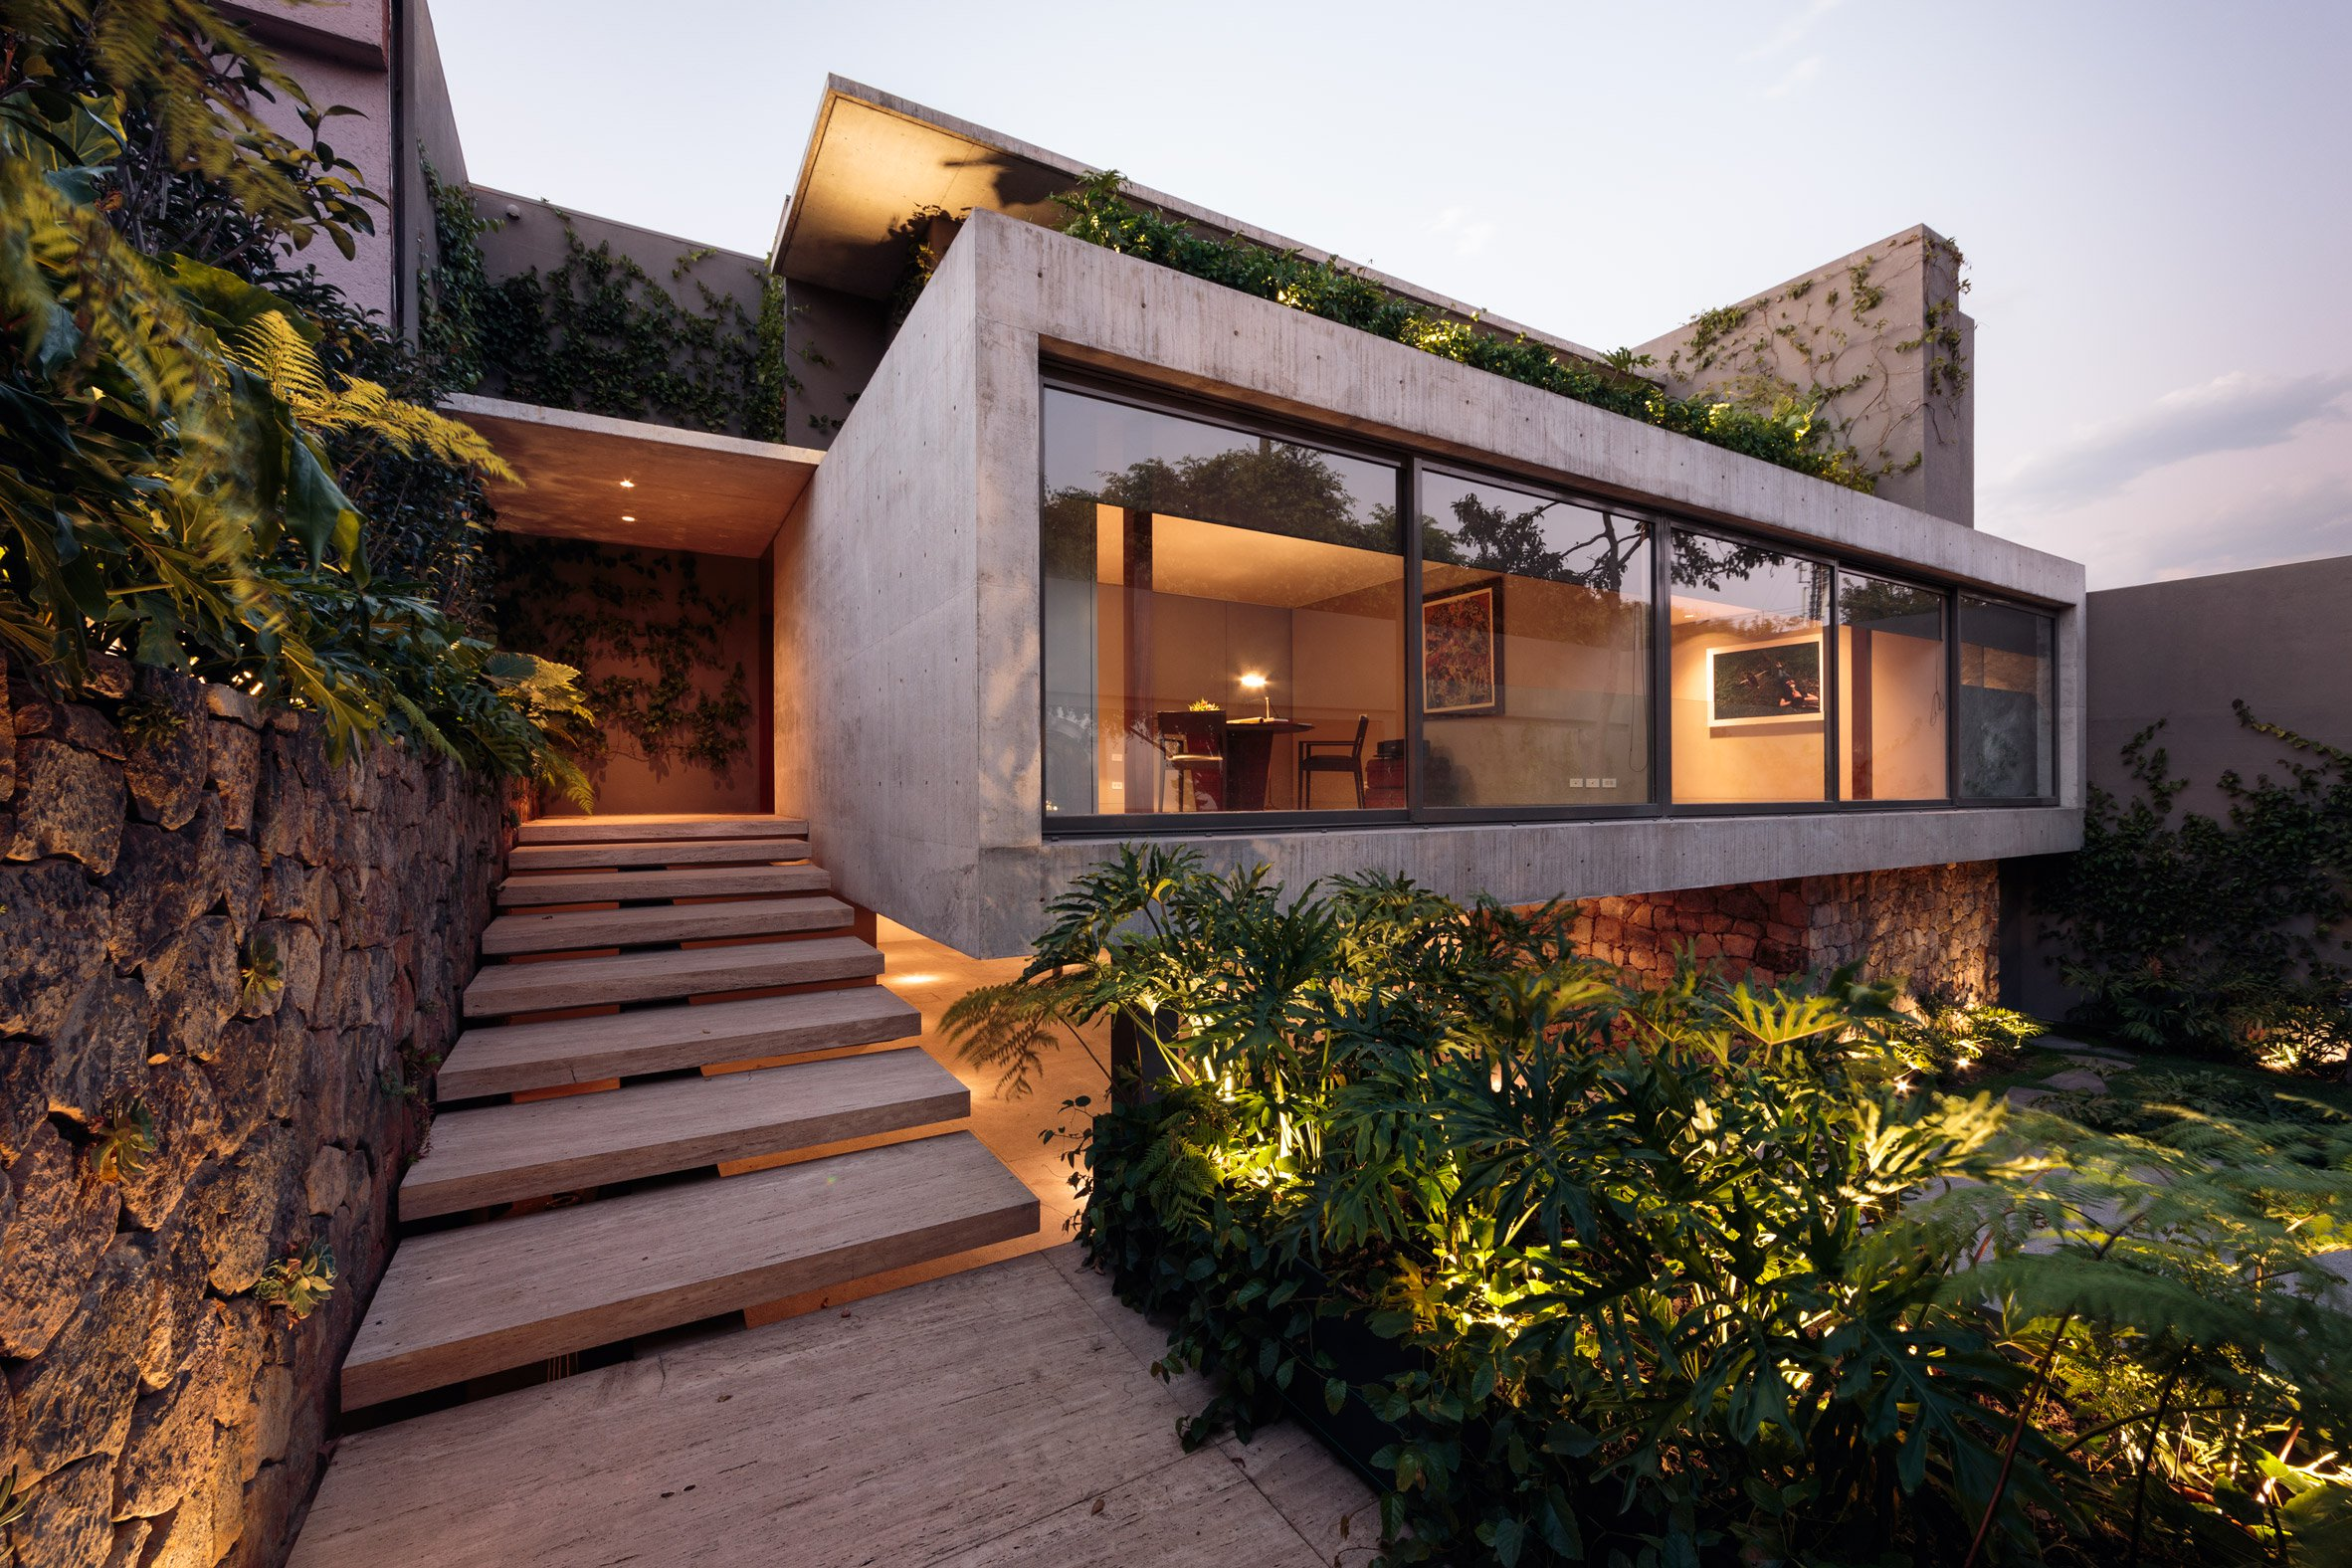 15 gorgeous concrete houses with unexpected designs for Precast concrete home designs